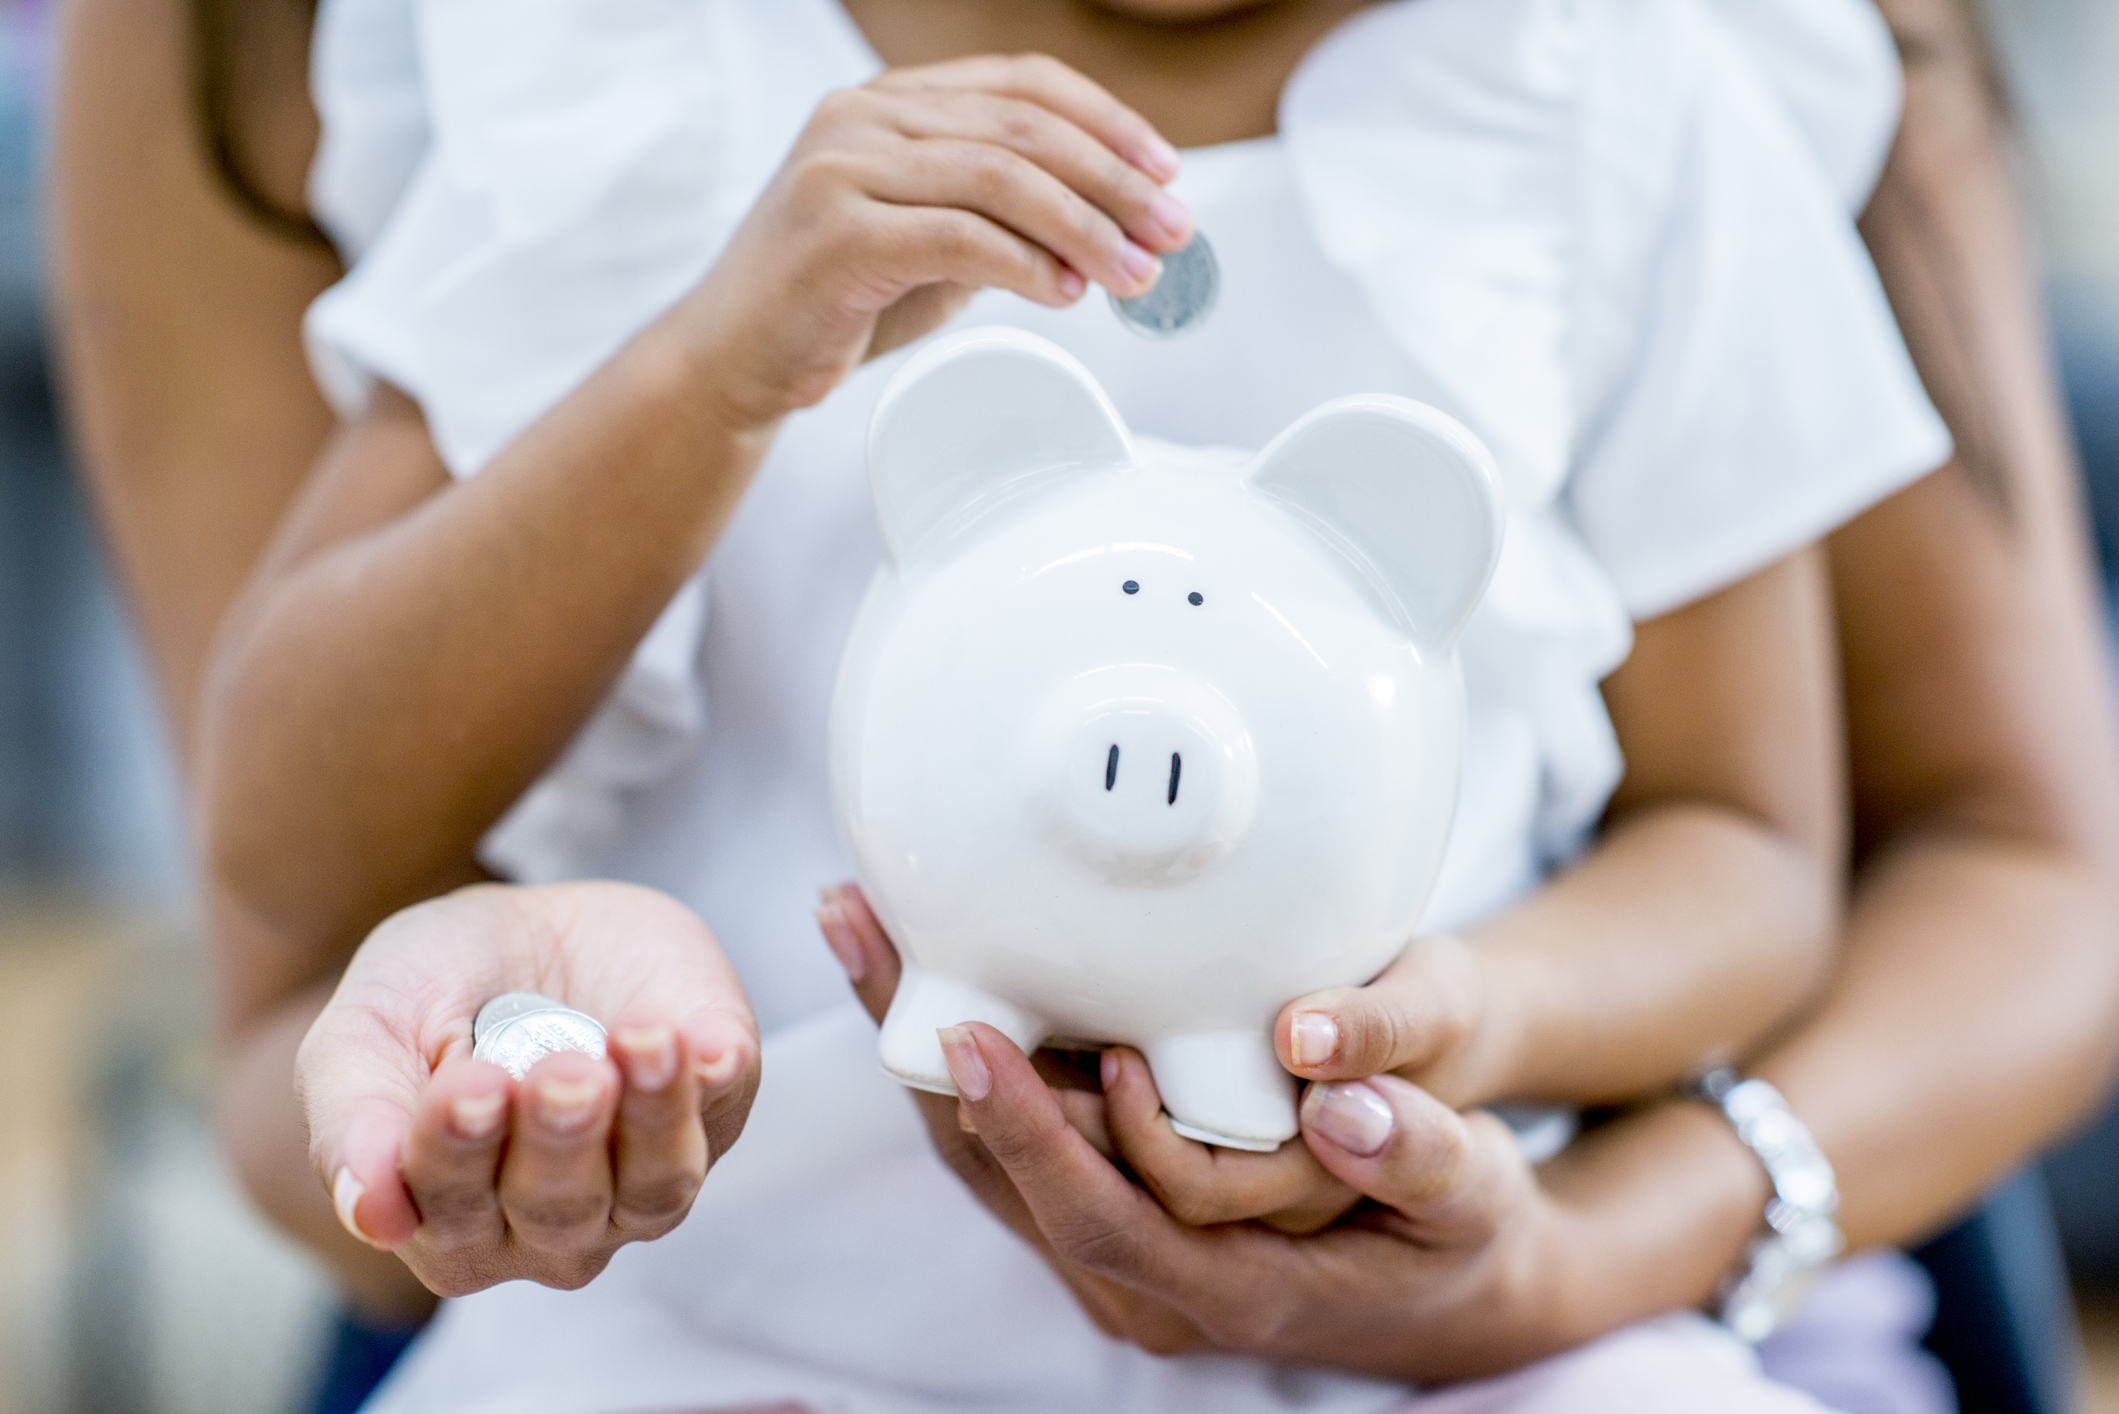 A mother and daughter are holding up a piggy bank. The daughter is putting coins into the bank.